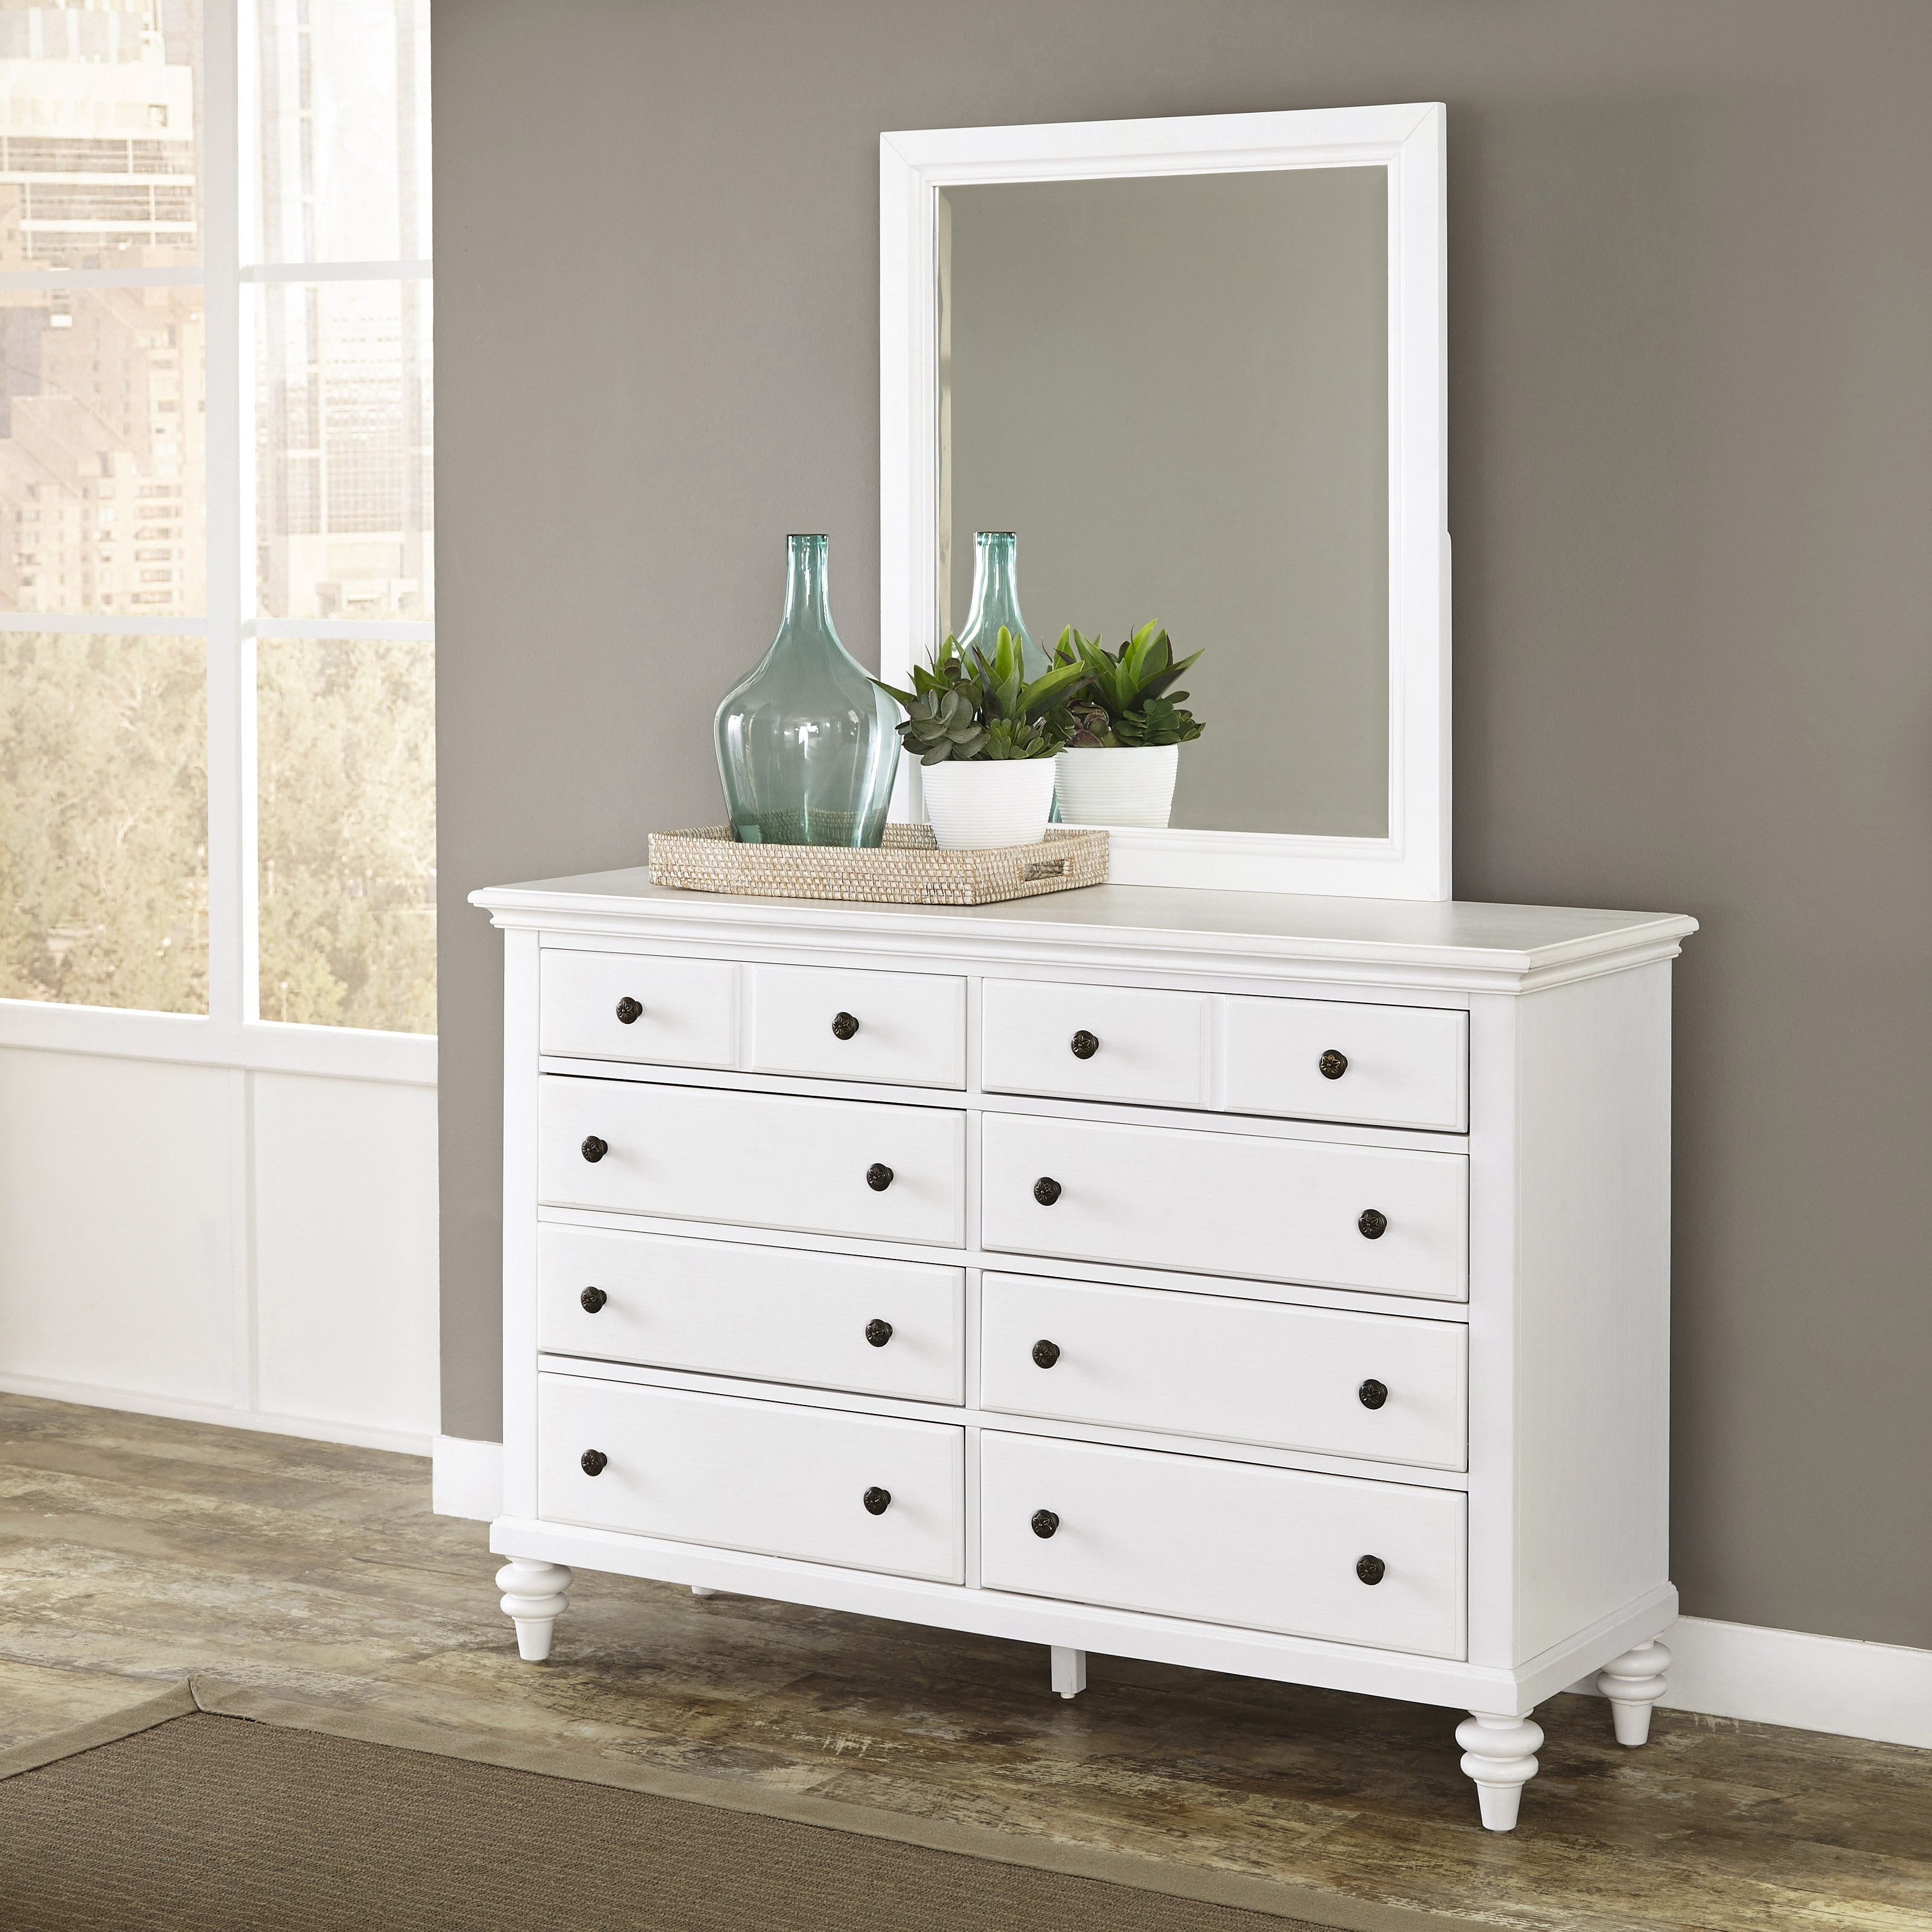 Furniture Store Browns Plains Home Styles Bermuda Brushed White Dresser And Mirror